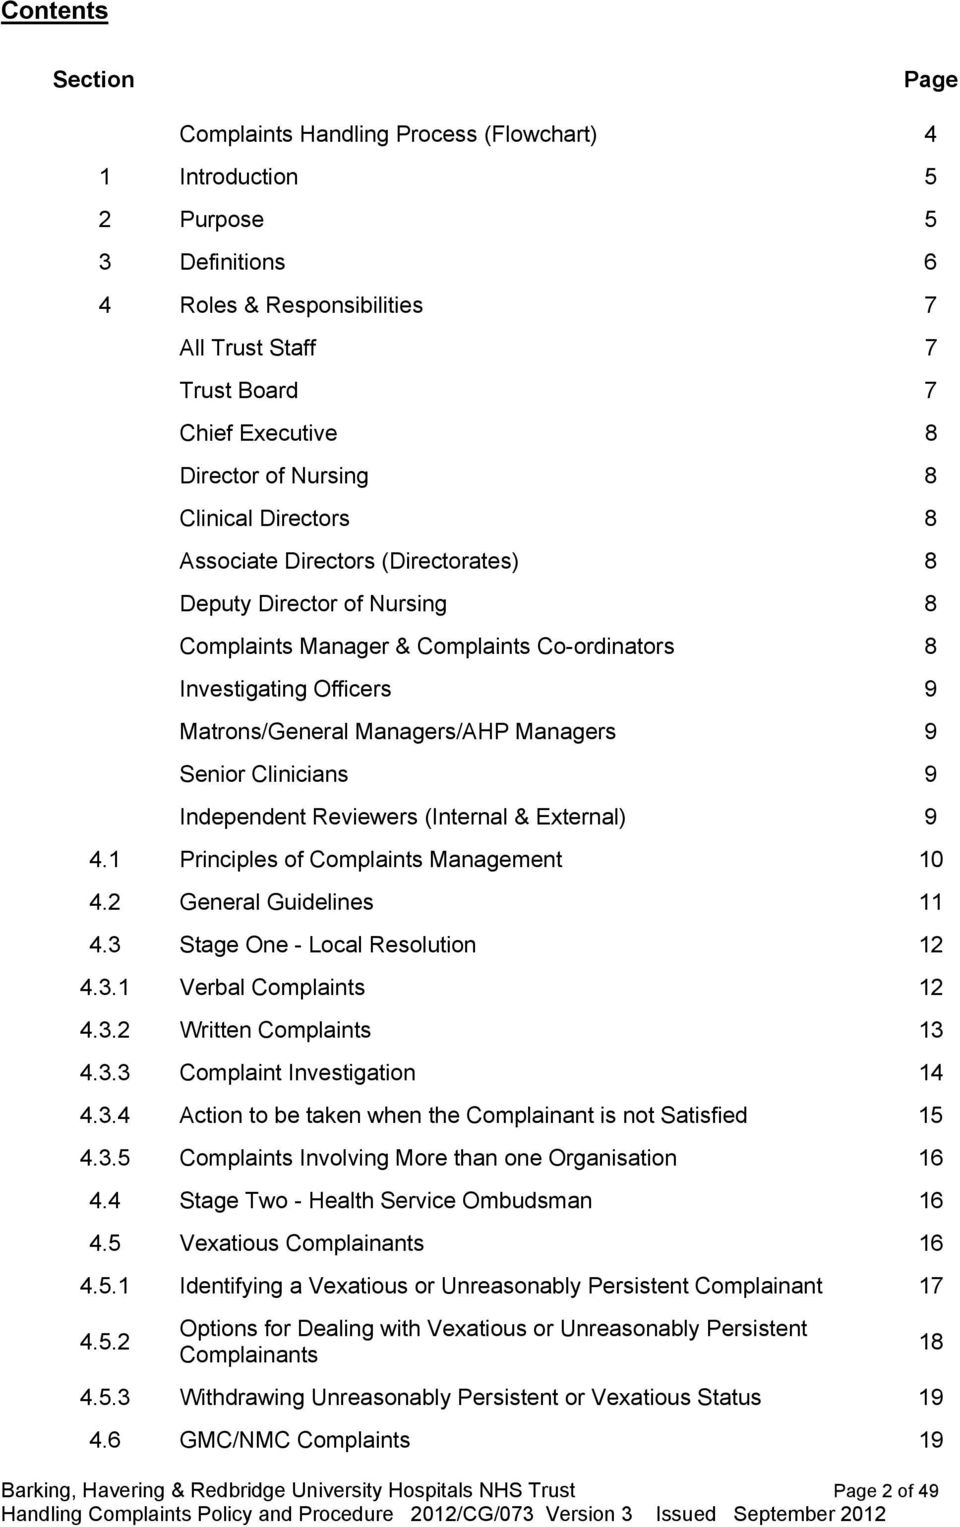 Managers 9 Senior Clinicians 9 Independent Reviewers (Internal & External) 9 4.1 Principles of Complaints Management 10 4.2 General Guidelines 11 4.3 Stage One - Local Resolution 12 4.3.1 Verbal Complaints 12 4.